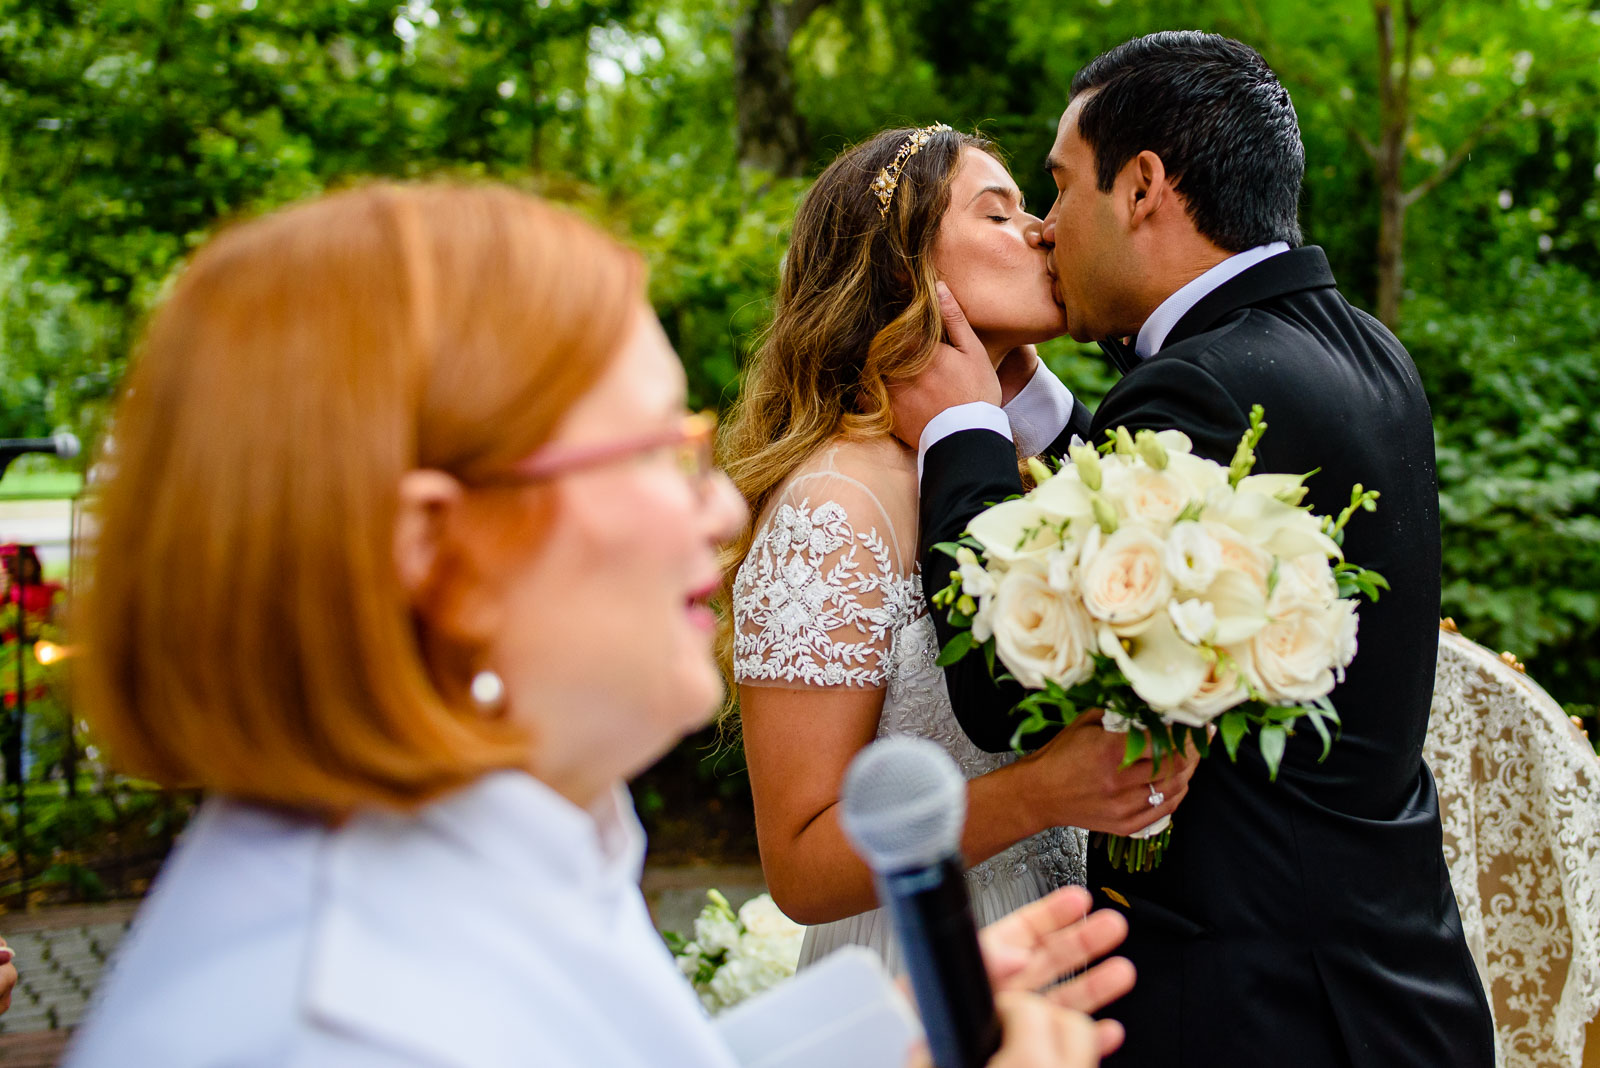 Bride and groom first kiss during ceremony